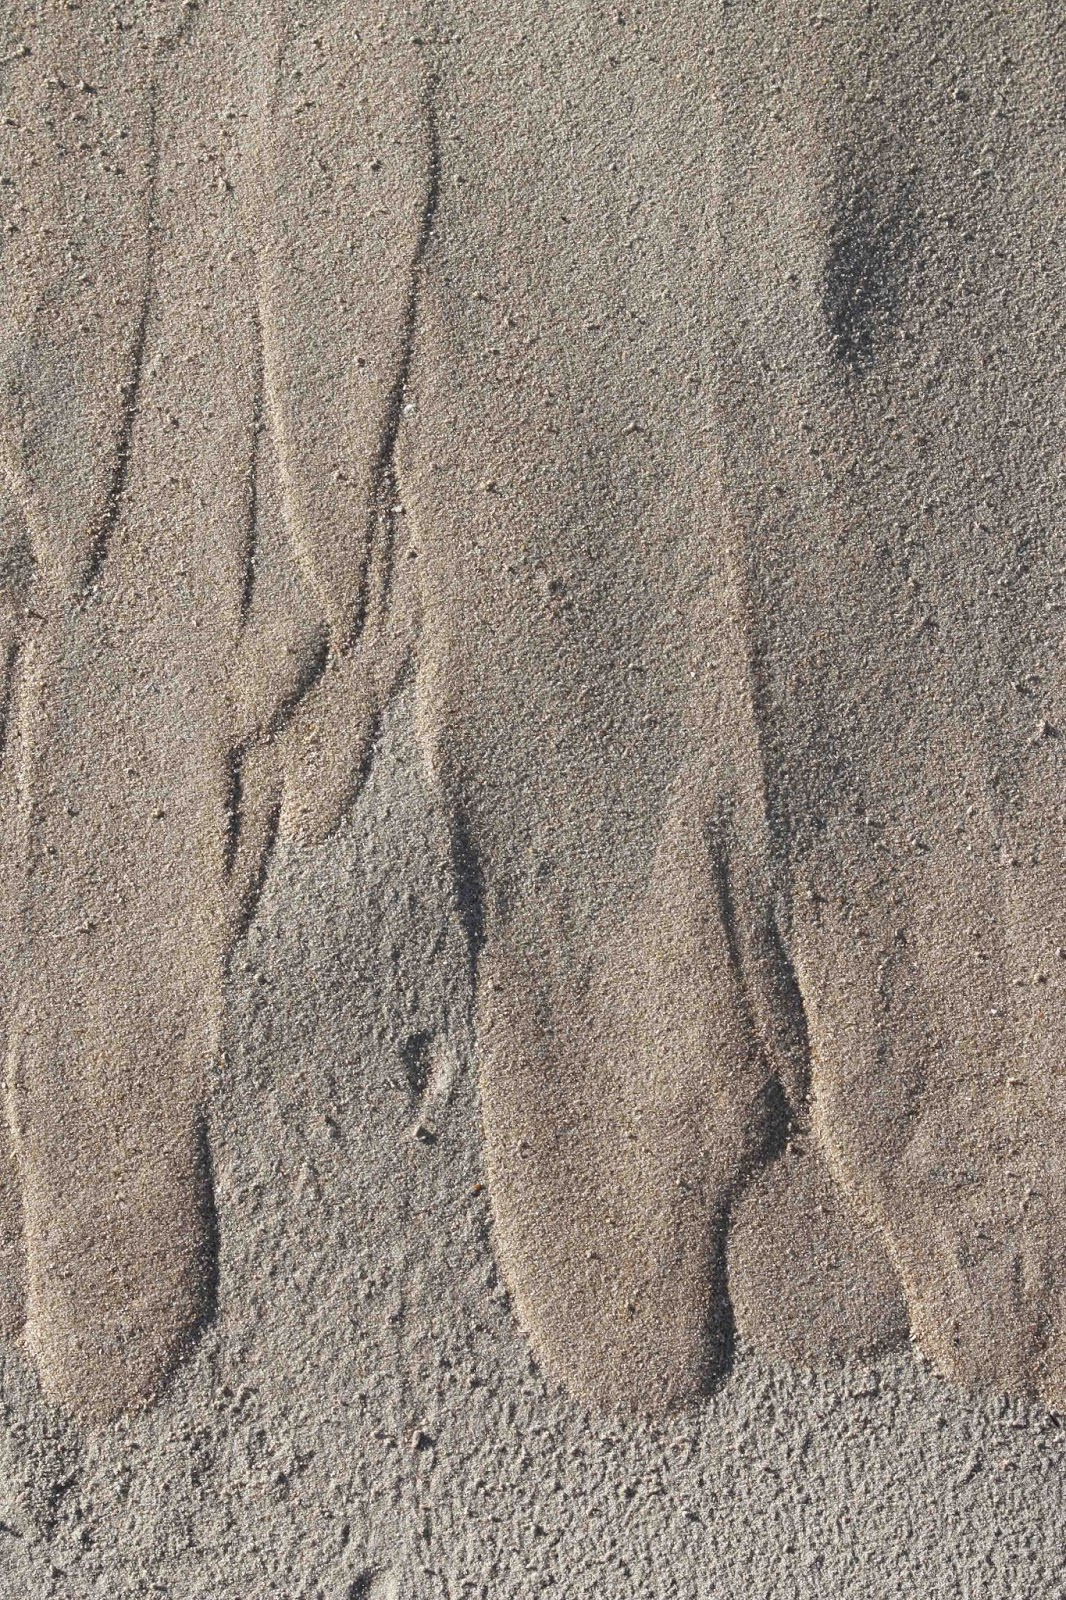 long fingers of sand